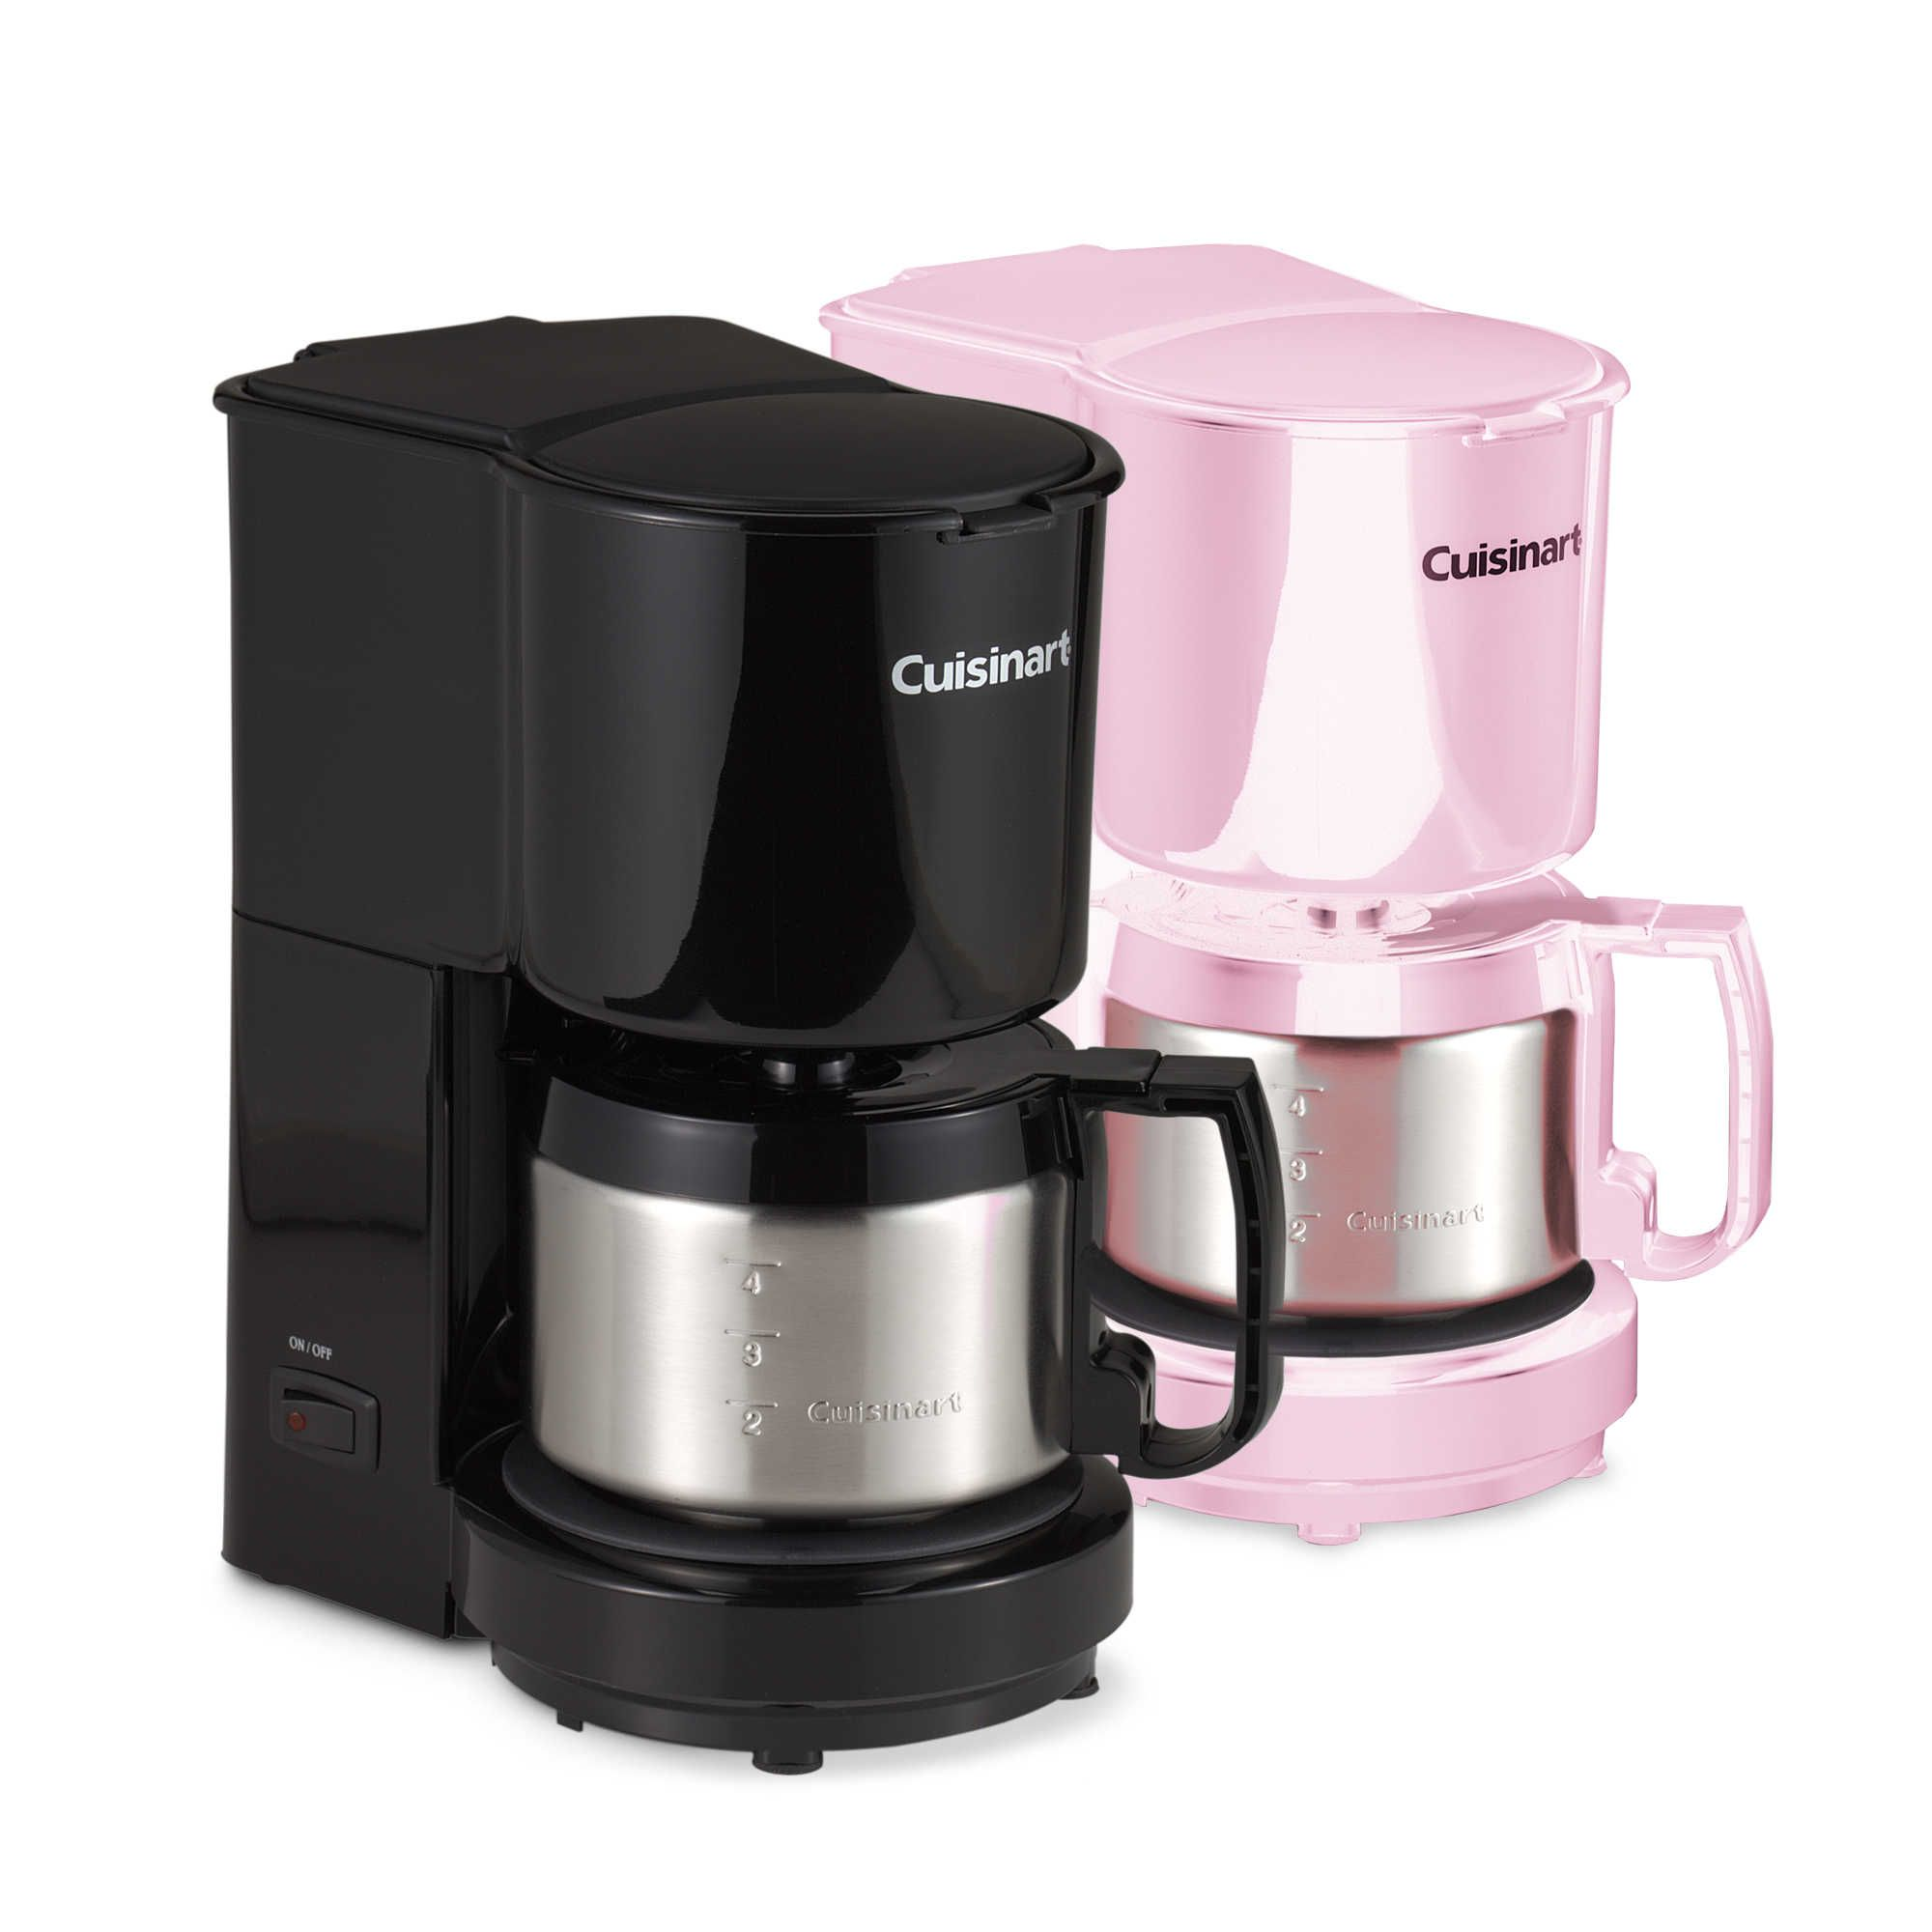 Cuisinart® 4-Cup Coffee Maker with Stainless Steel Carafe | 4 cup coffee maker, Coffee, Coffee maker